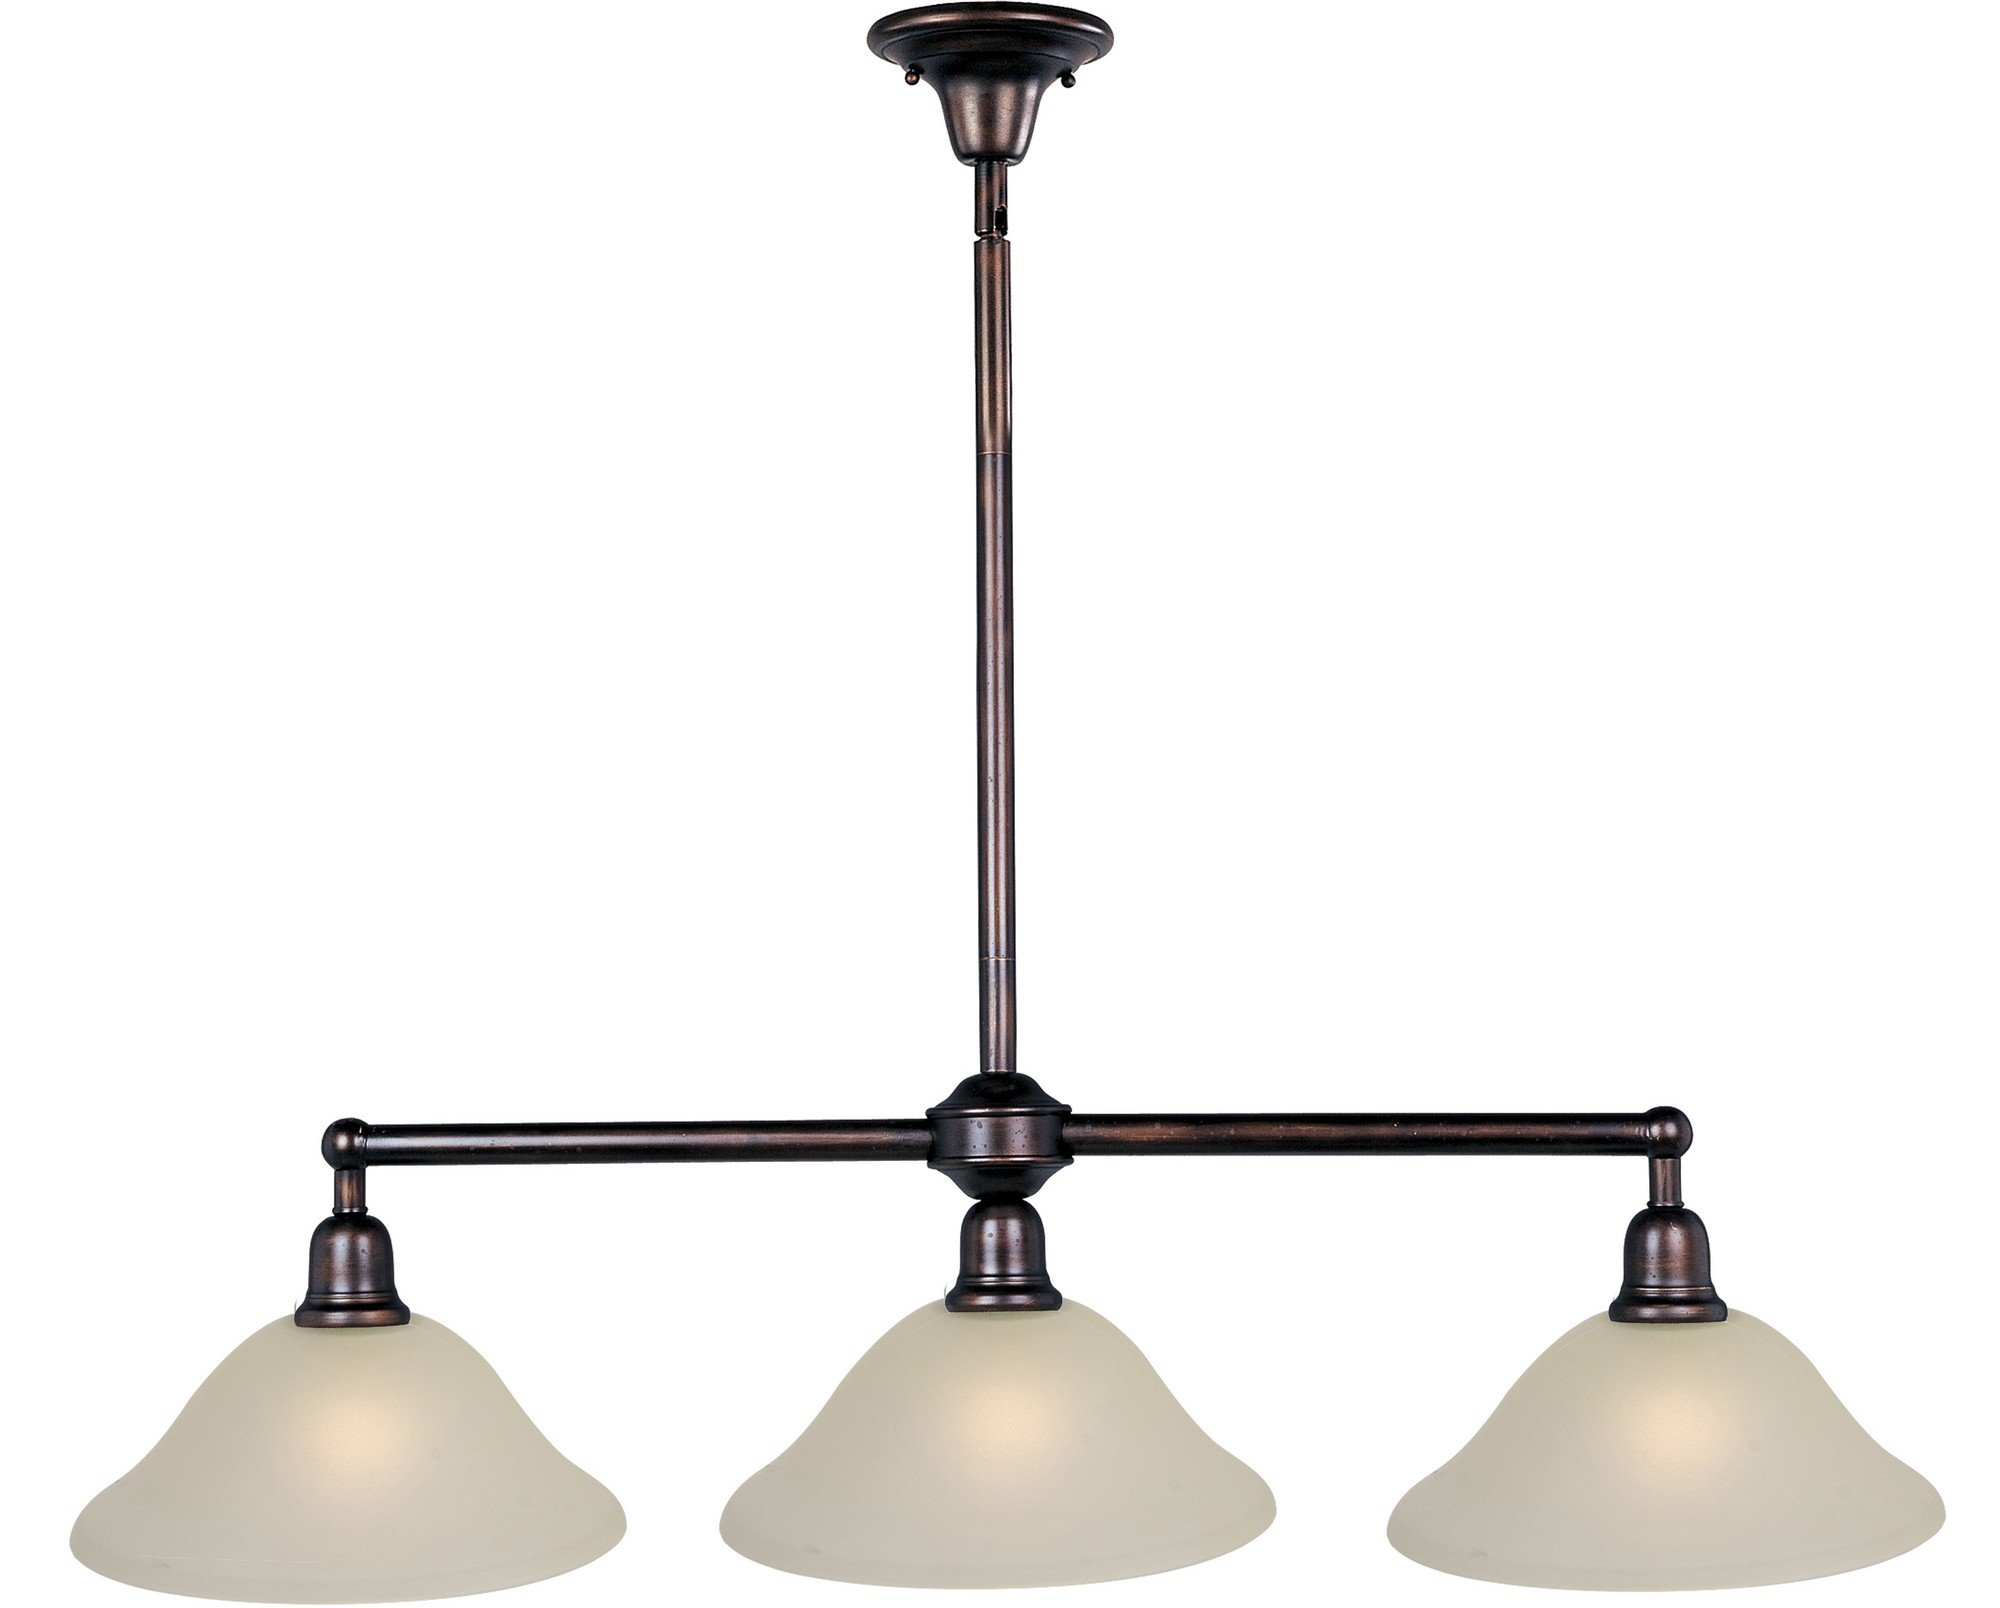 Maxim 11093SVOI Bel Air 3-Light Pendant, Oil Rubbed Bronze Finish, Soft Vanilla Glass, MB Incandescent Incandescent Bulb , 60W Max., Dry Safety Rating, Metal Shade Material, Rated Lumens